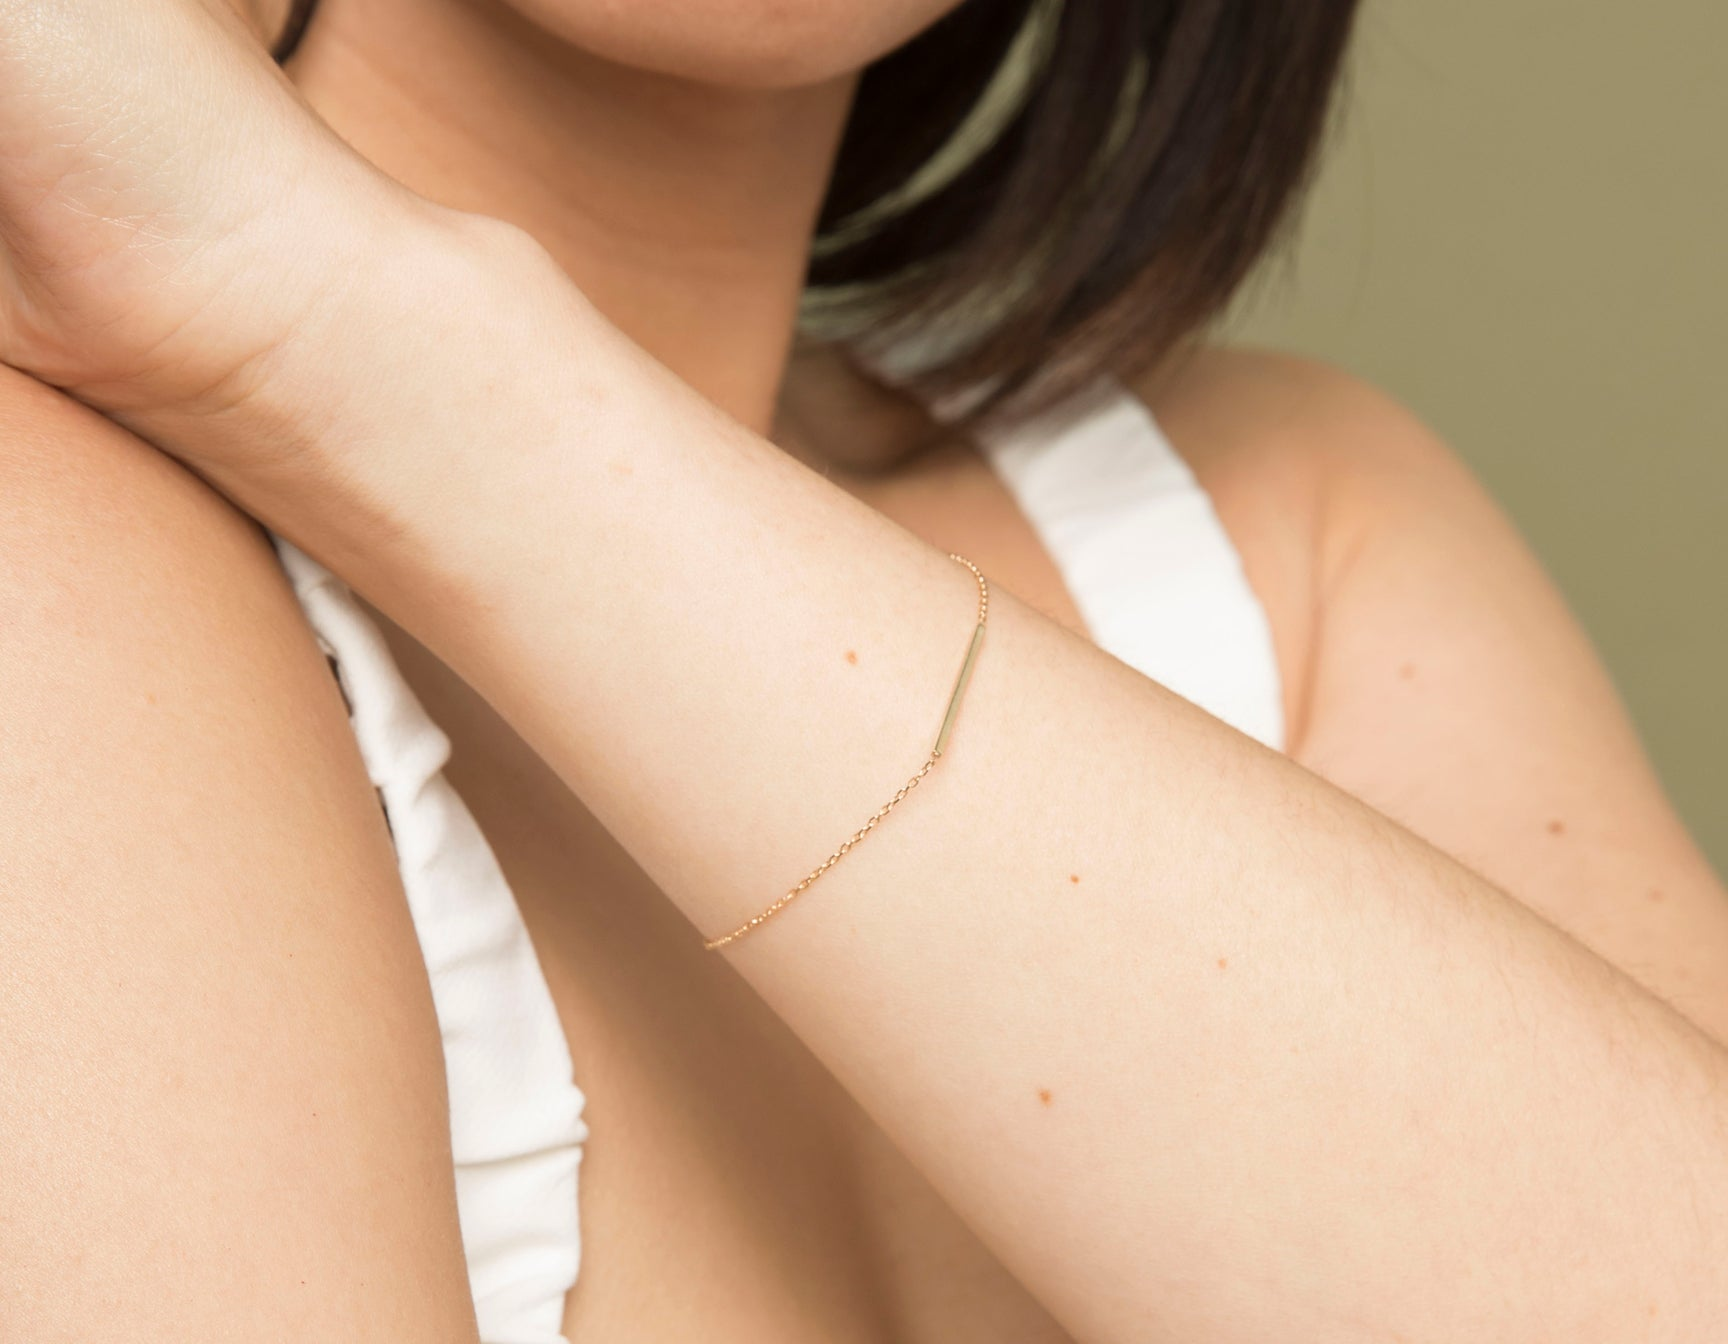 Model wearing sleek Vrai solid gold Line Bracelet, 14K Yellow Gold